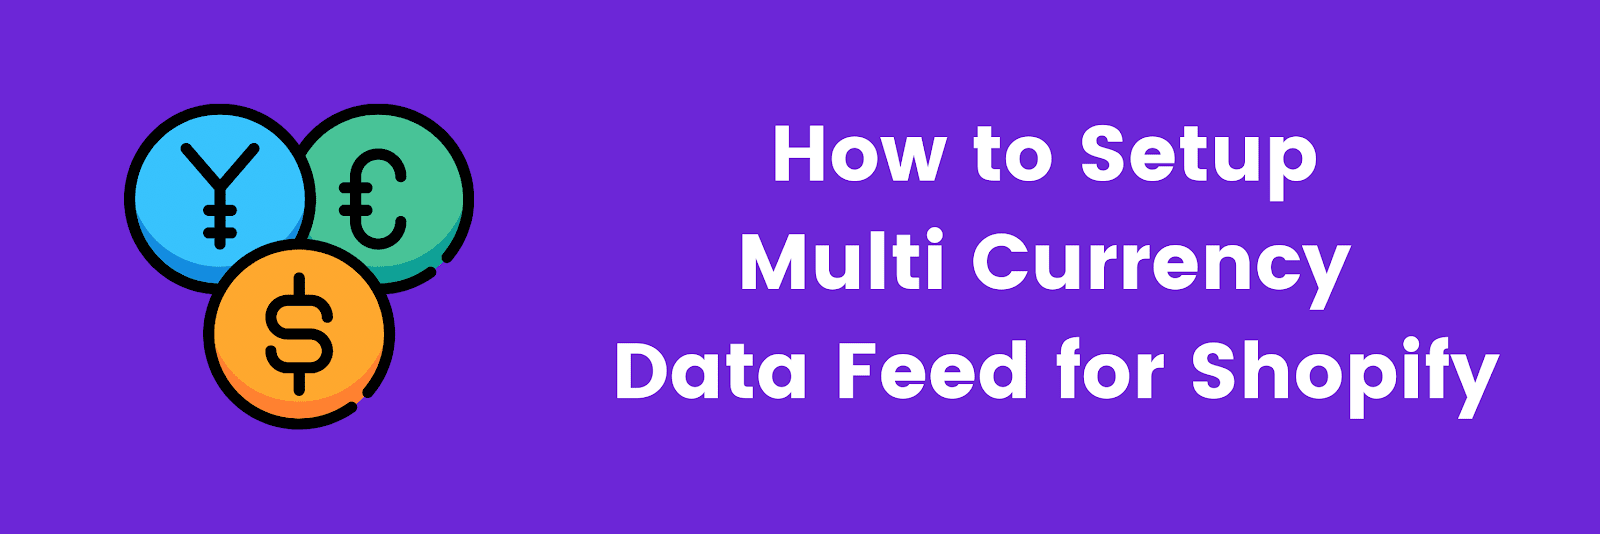 Multi Currency Data Feed for Shopify